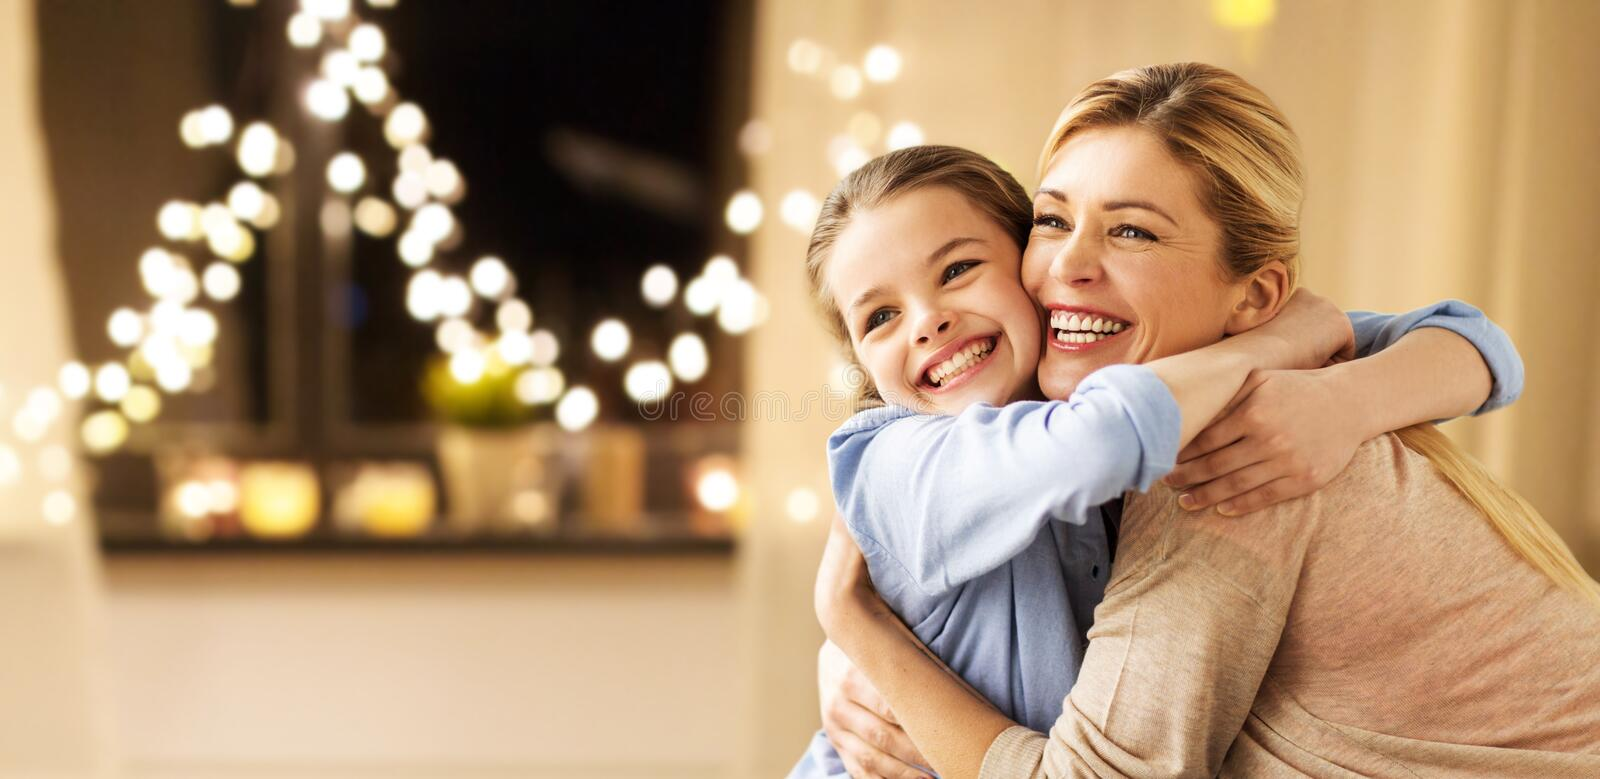 Happy smiling family hugging at home on christmas royalty free stock photo